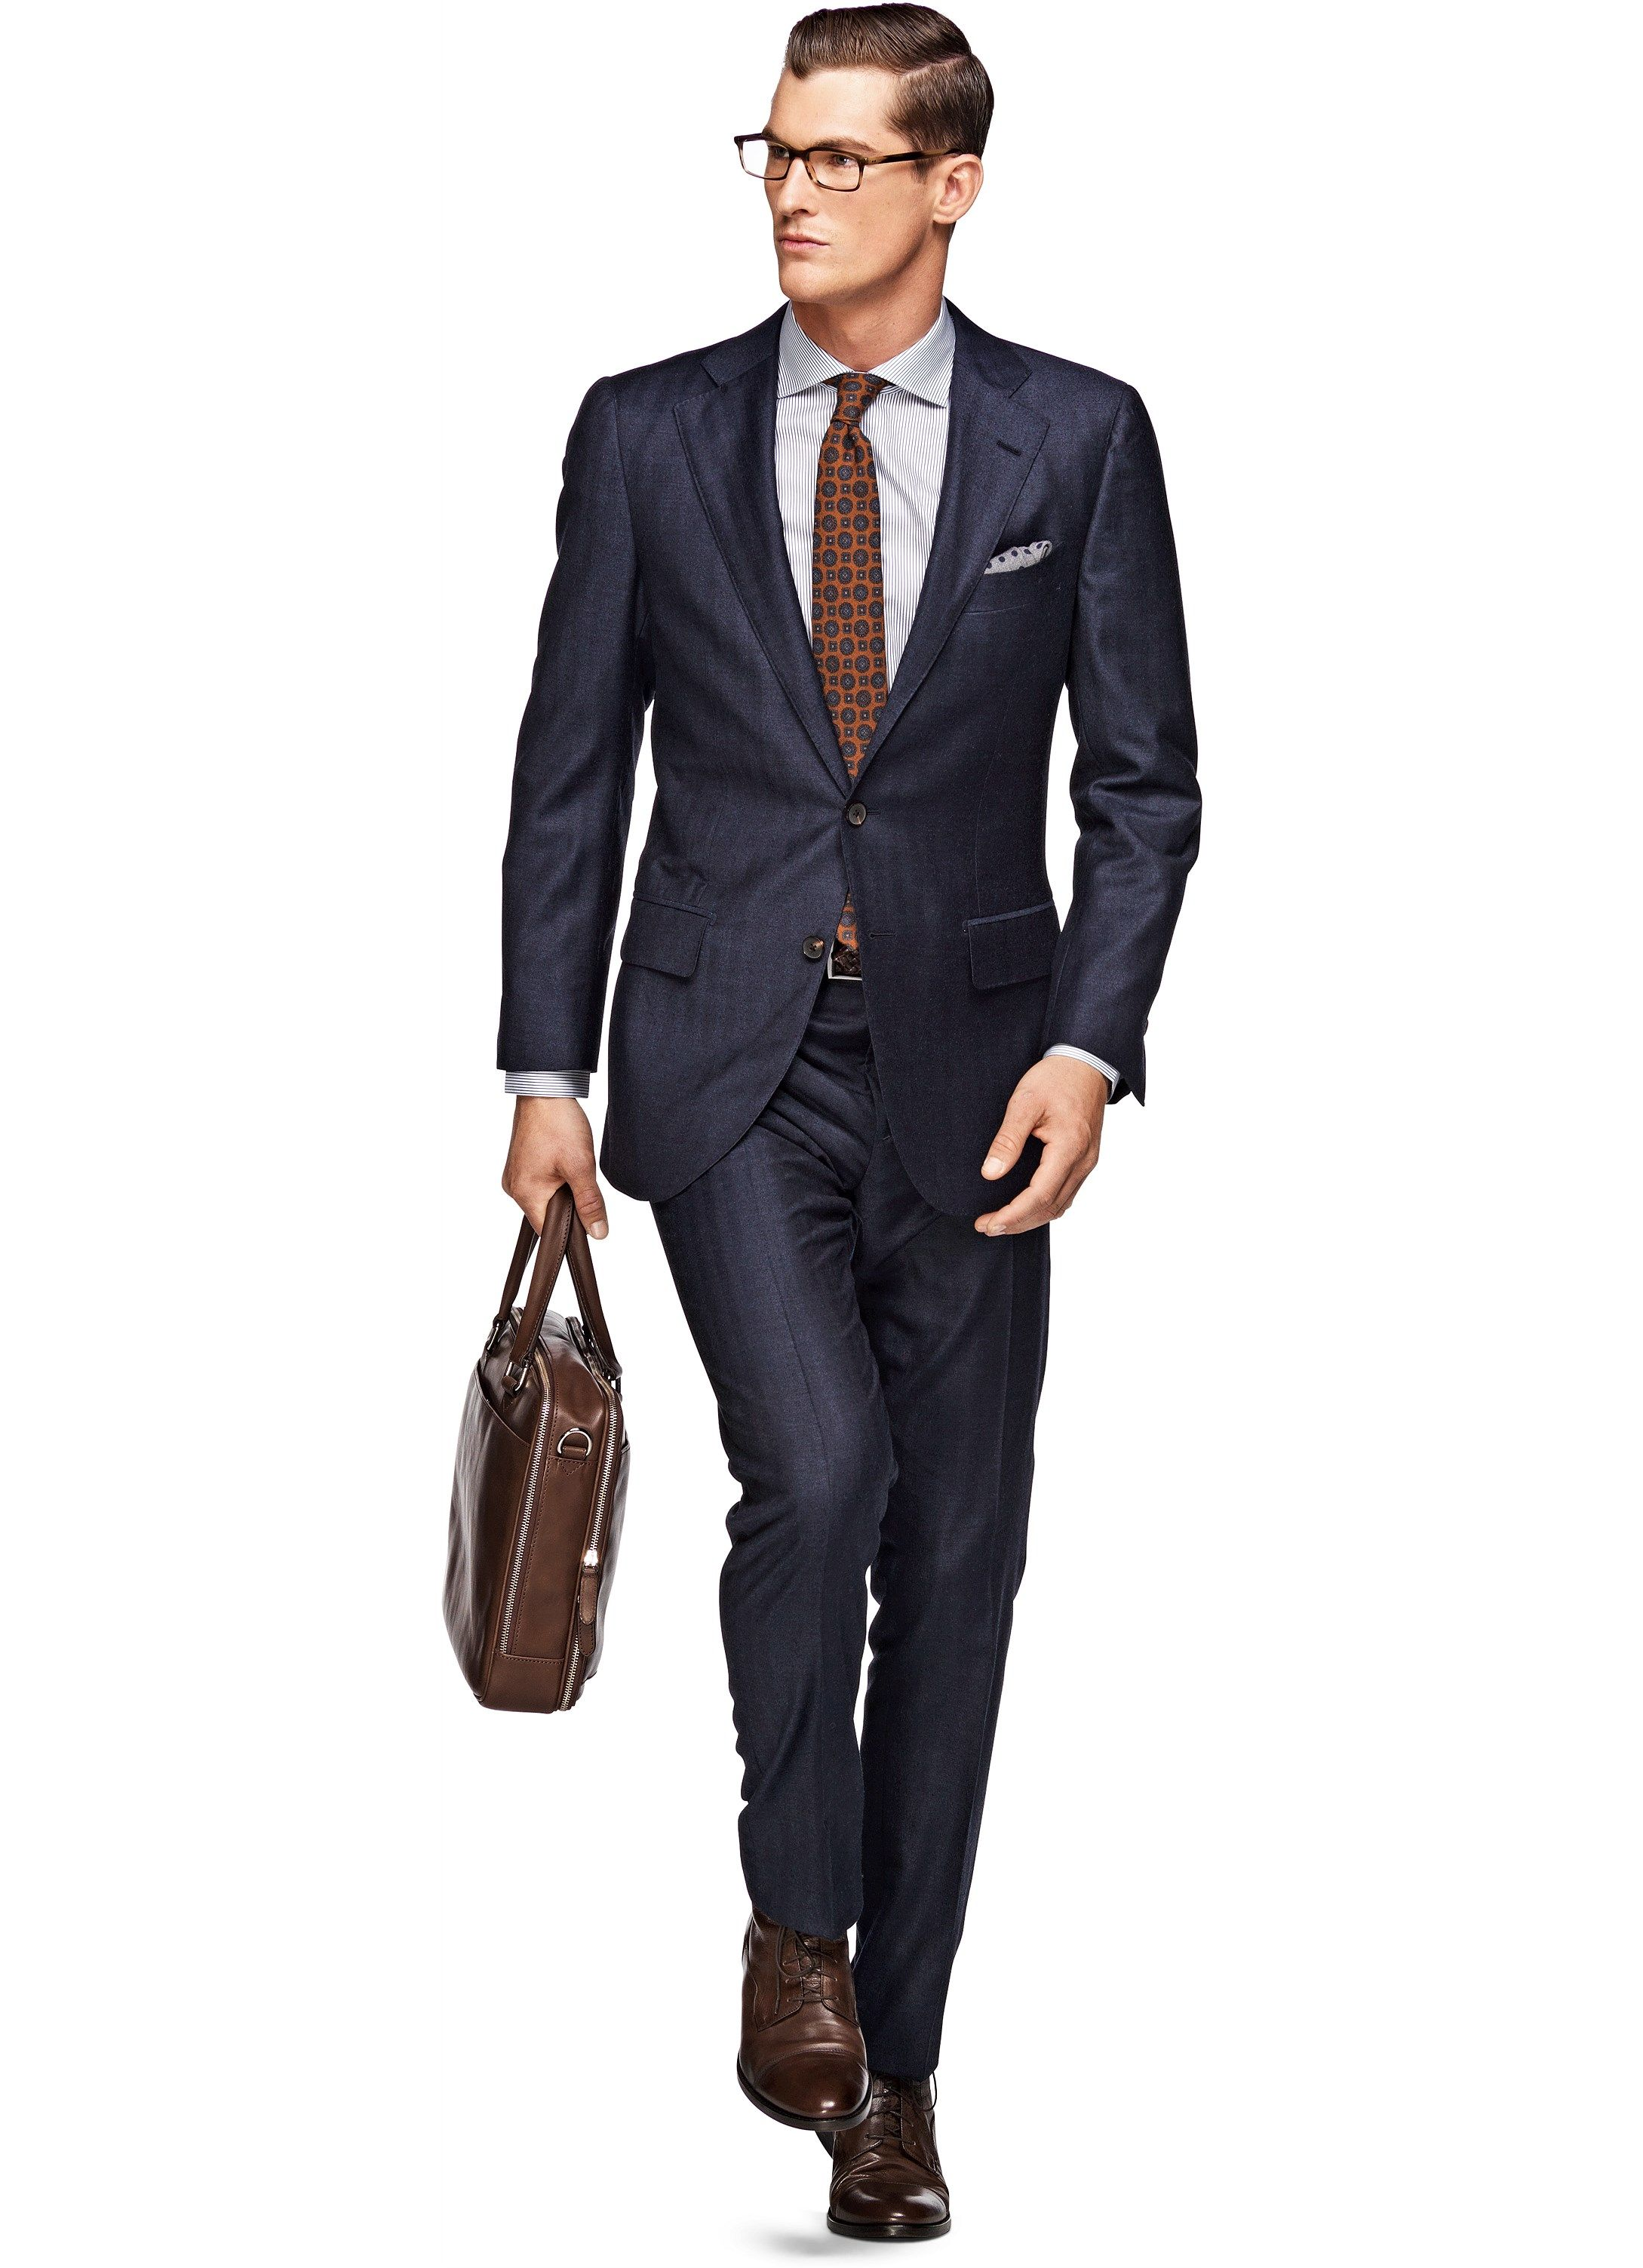 Great use of dark brown leather like the matching bag belt